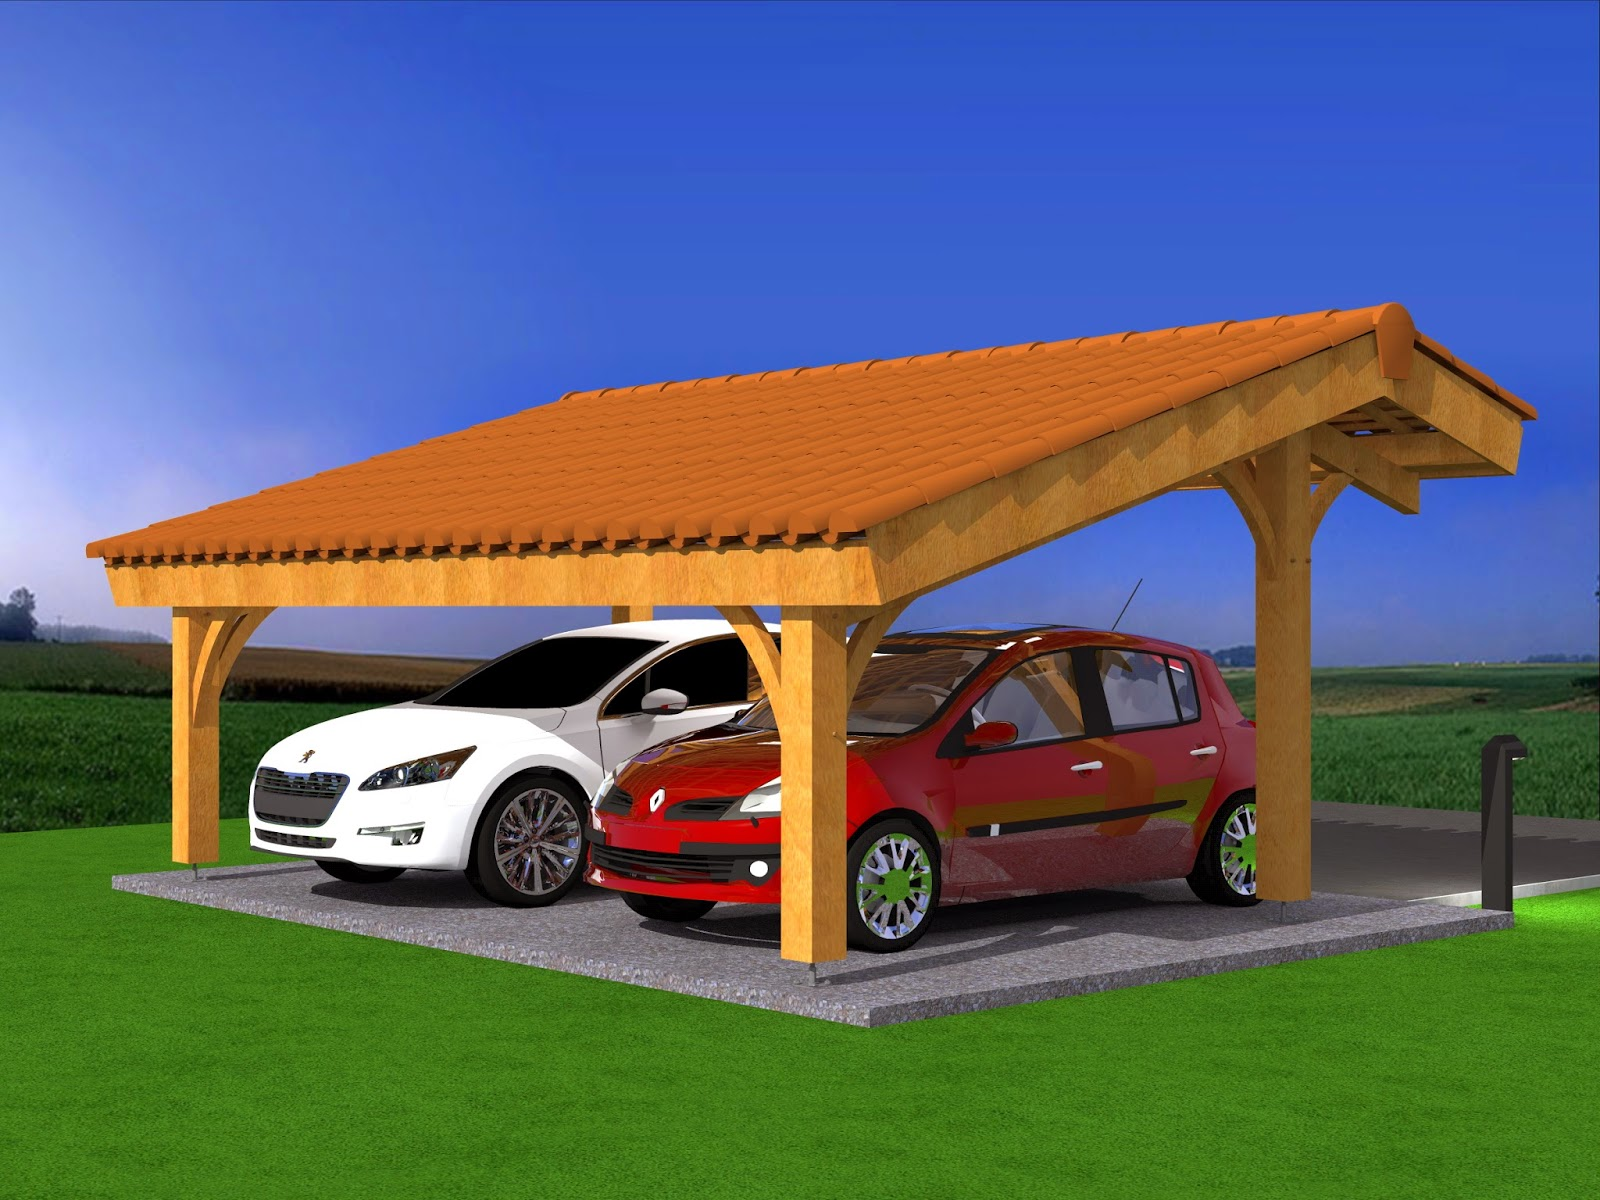 mod lisation projet carport bois 2 voitures avec sketchup pro. Black Bedroom Furniture Sets. Home Design Ideas